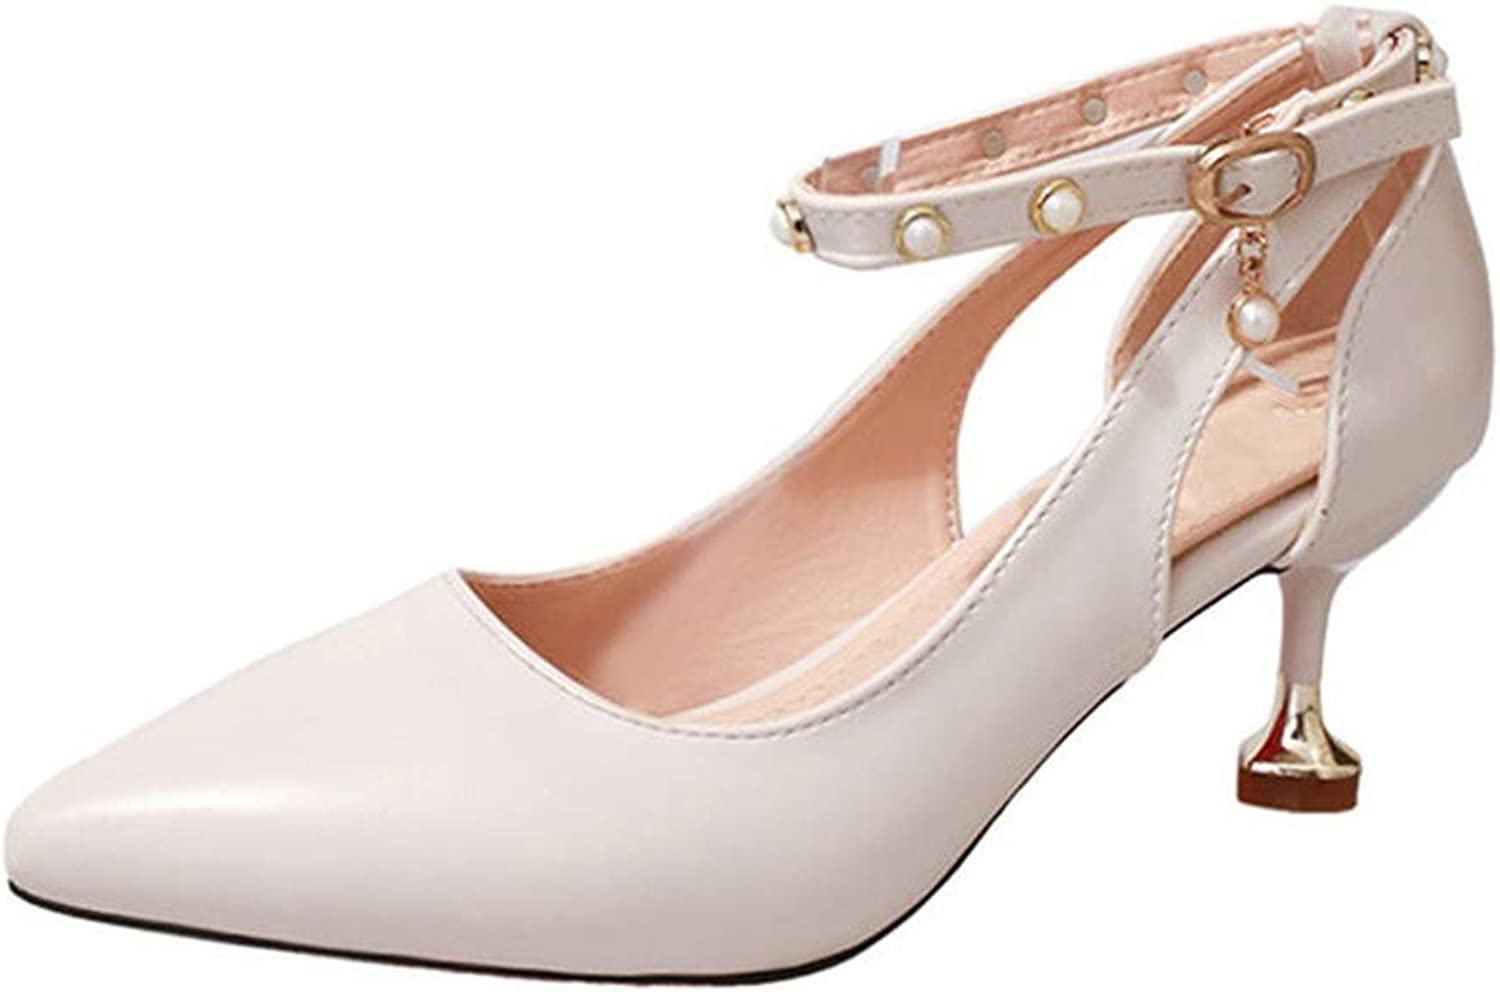 Lost Stars Pumps 3-5Cm Mid Heel Classic Sexy Pointed Toe Kitten Heels Sandals shoes Wedding Pumps